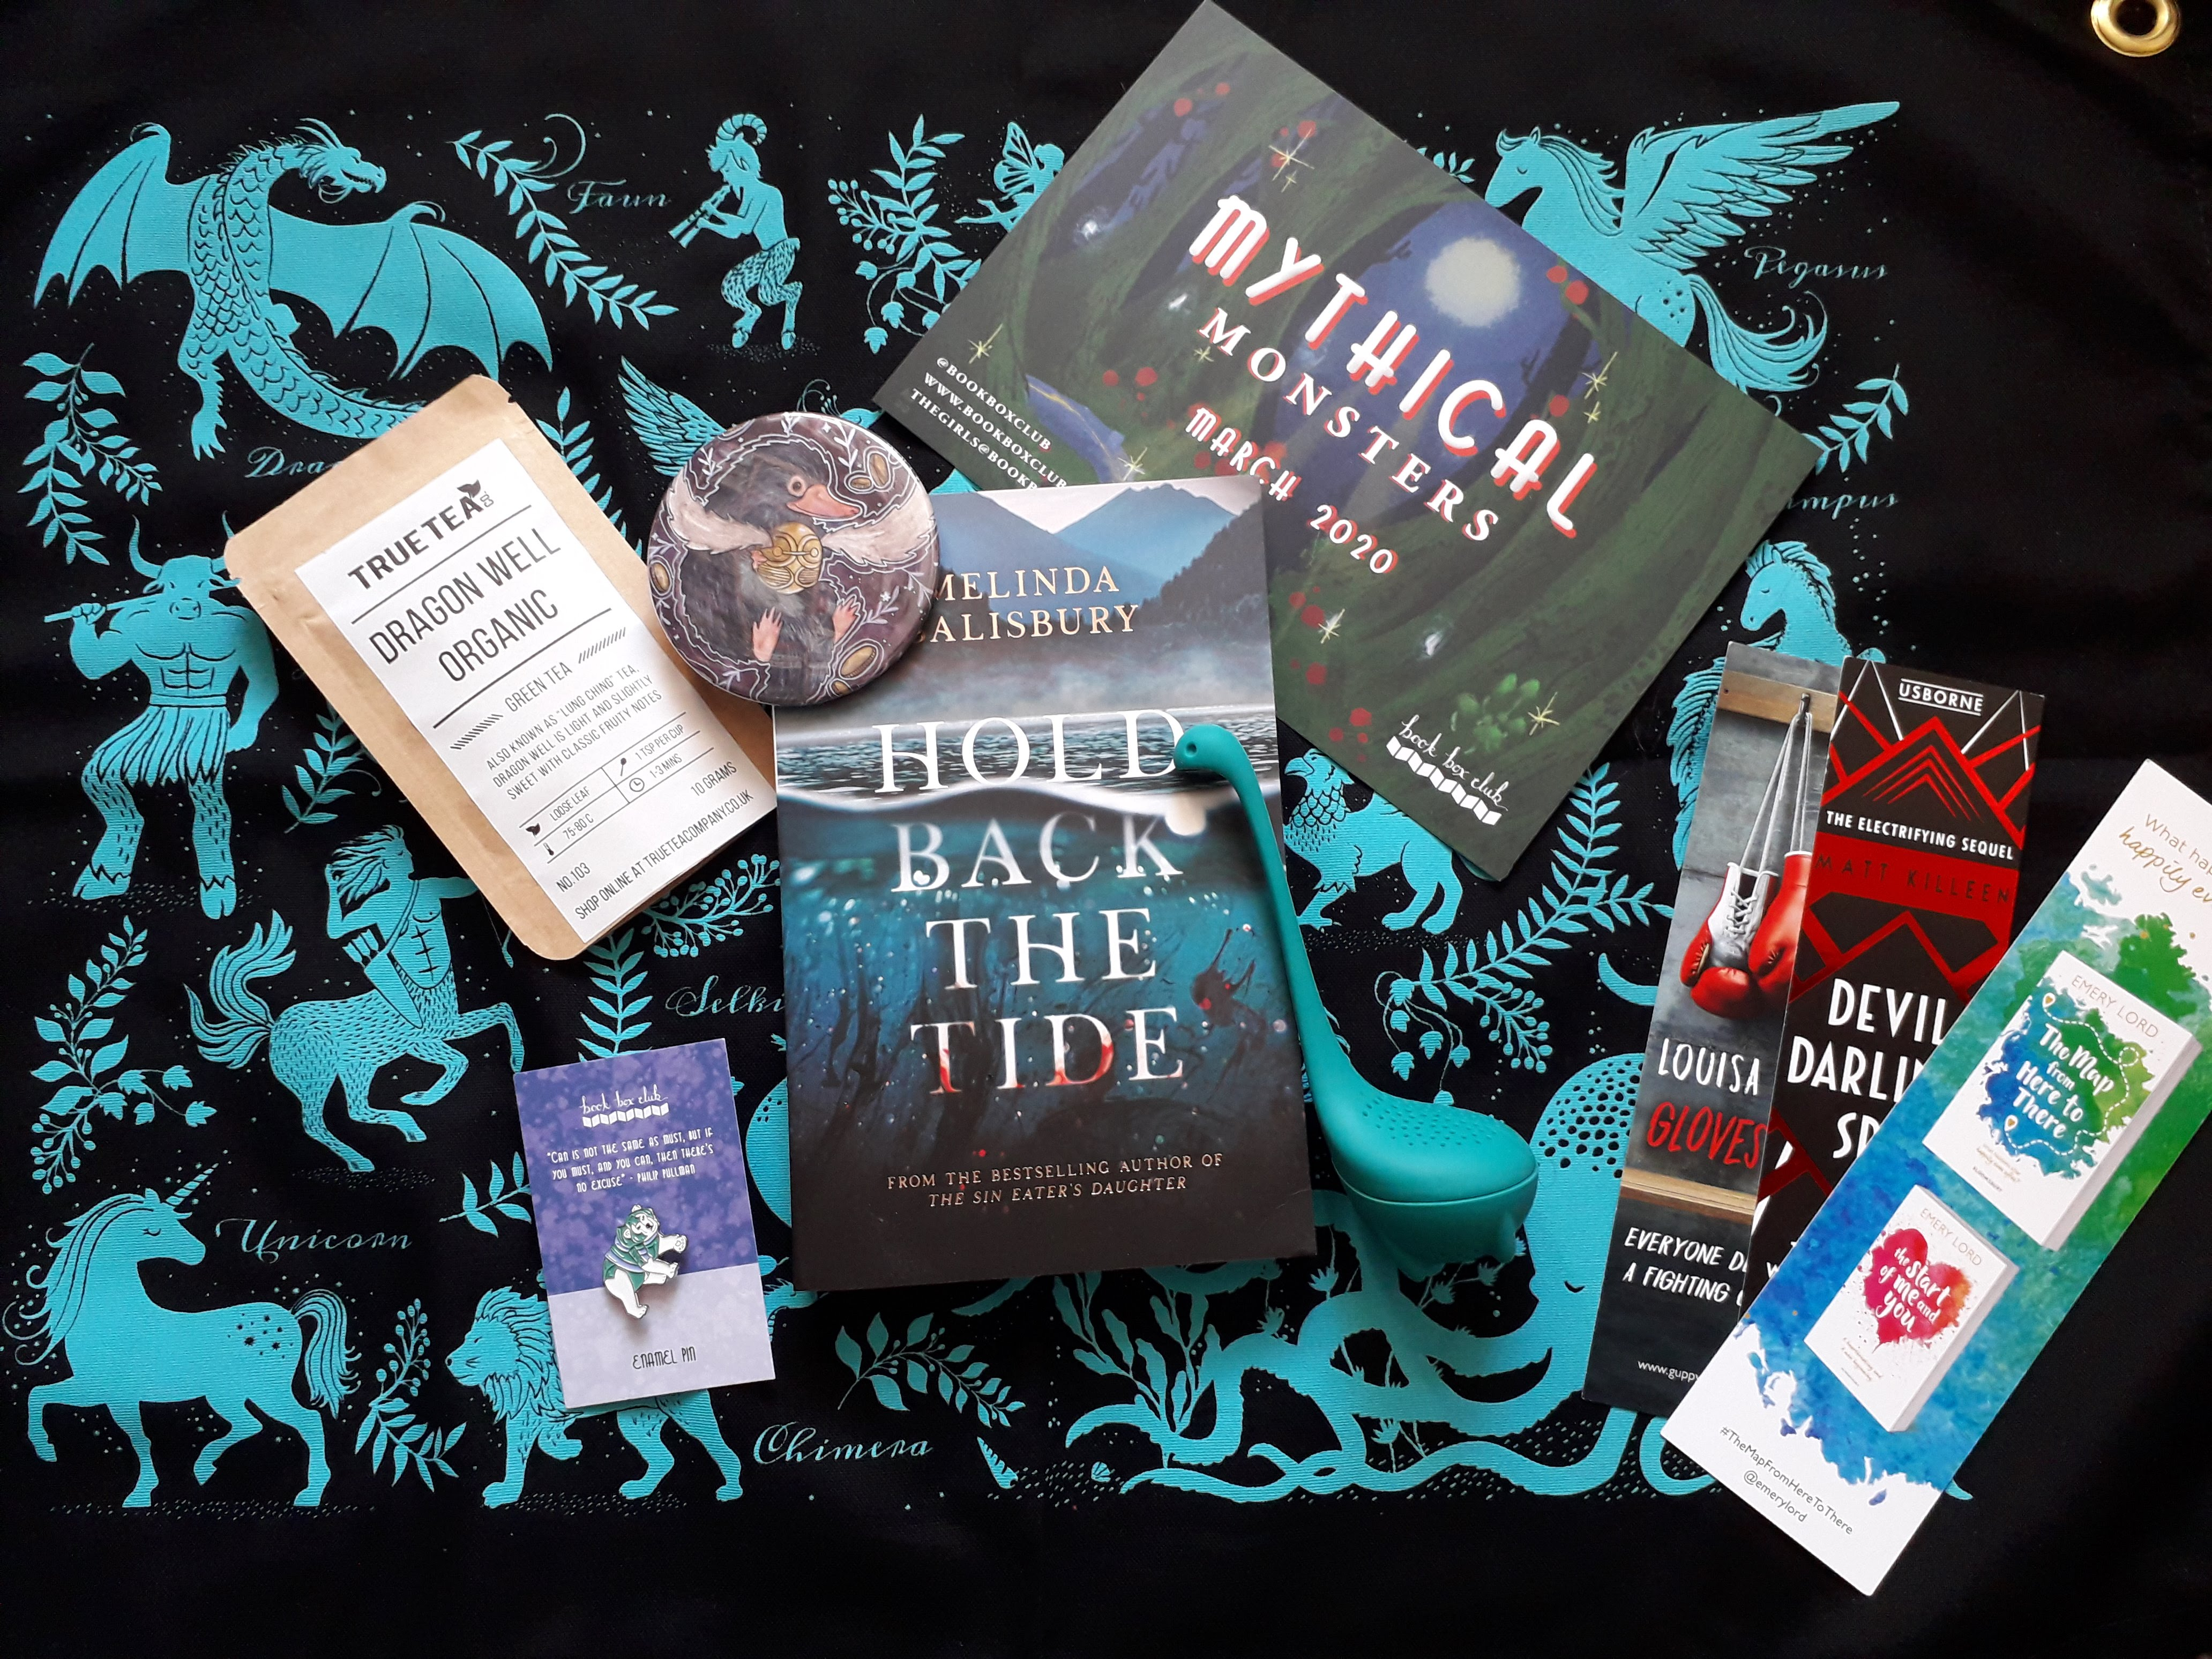 20200325 144138 - Unboxing- Book Box Club March